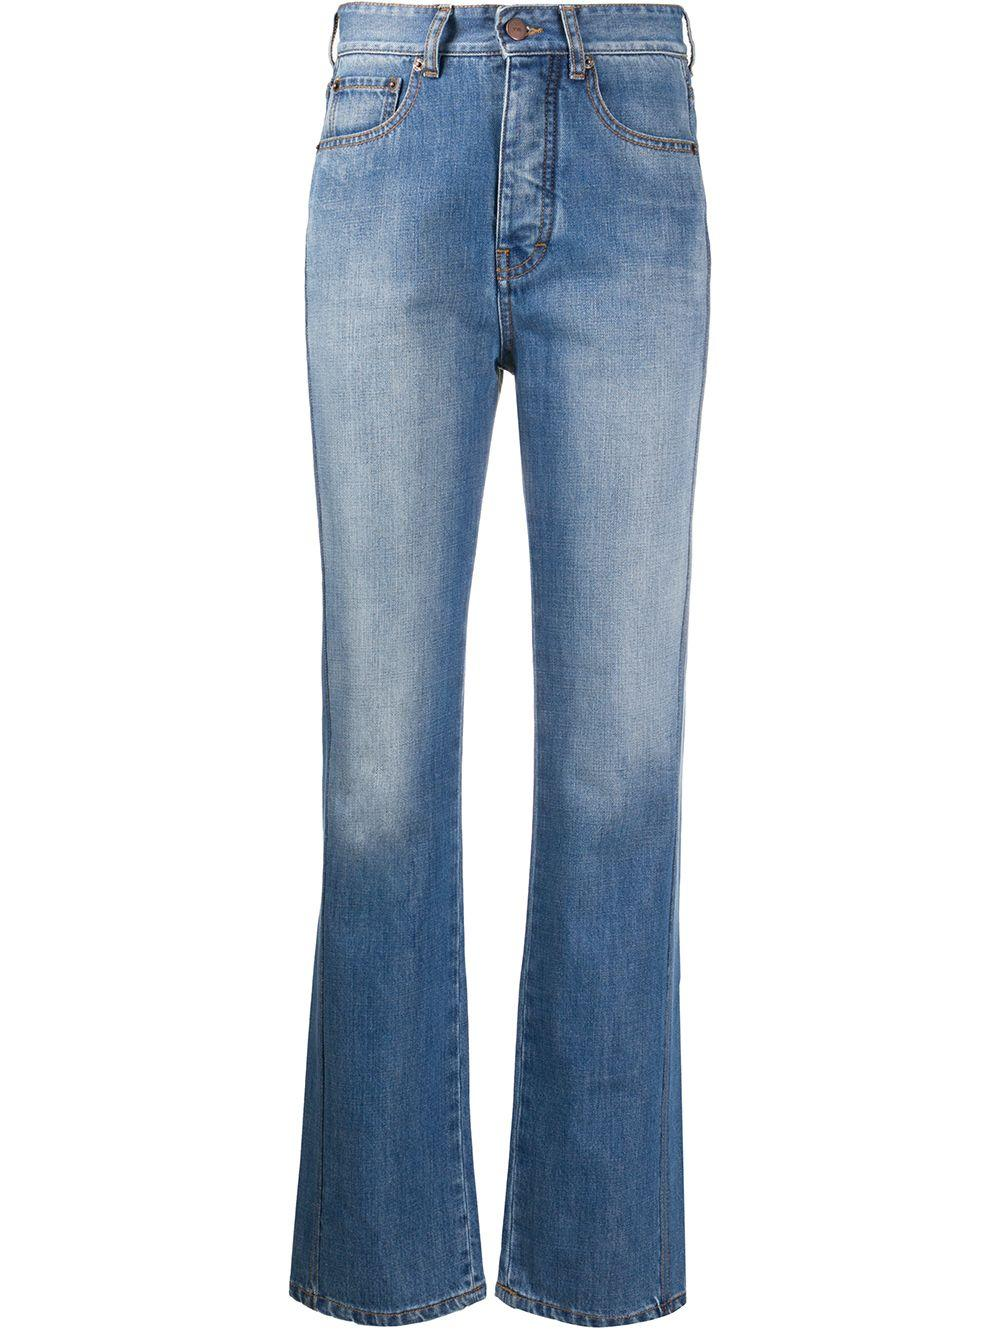 Midtown Button Fly Straight Leg Jean